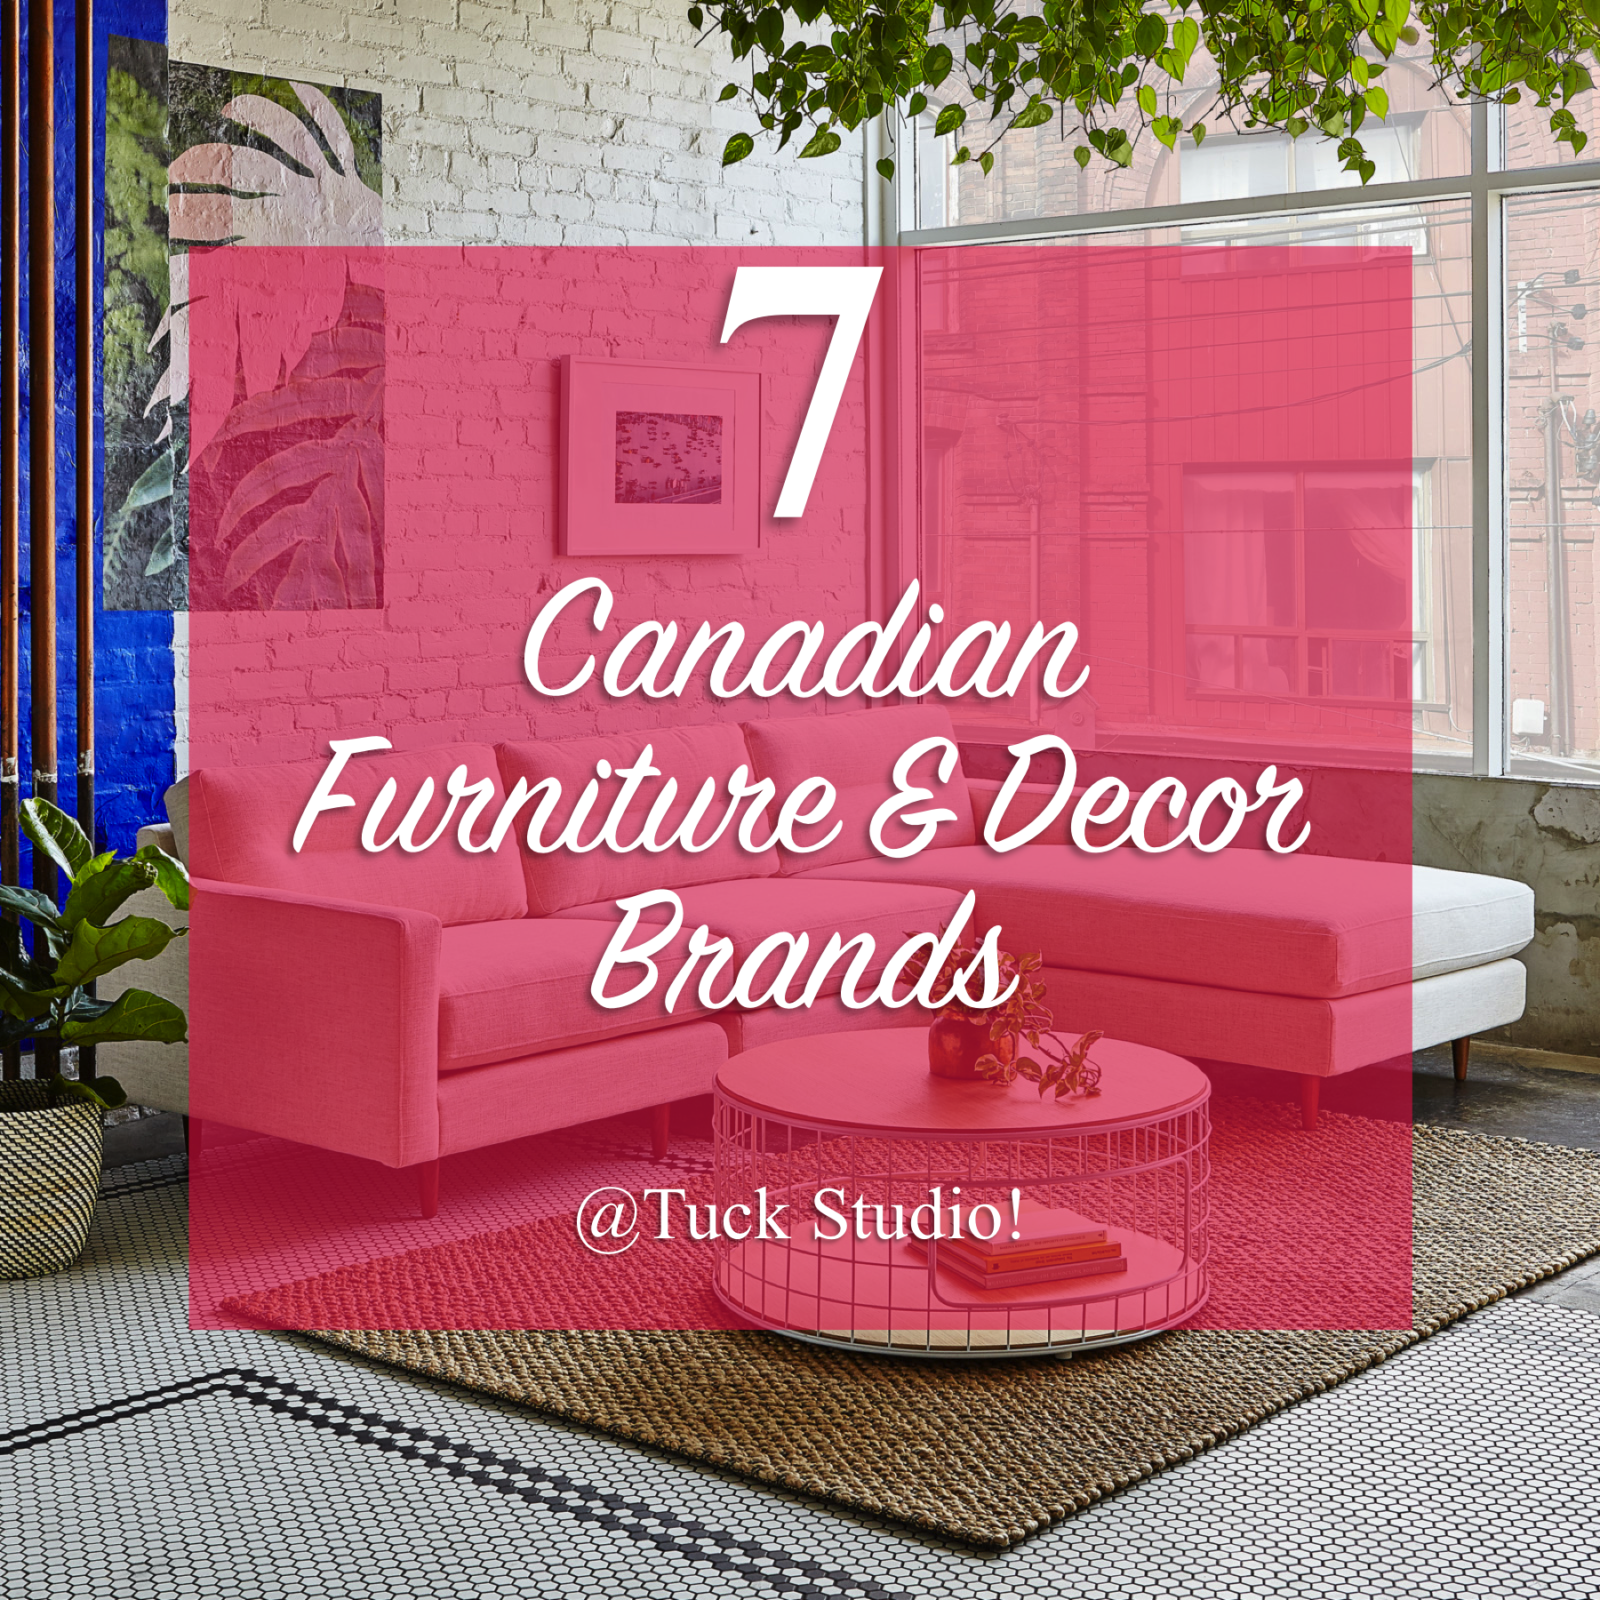 Oh Canada 7 Canadian Furniture Home Decor Brands Available At